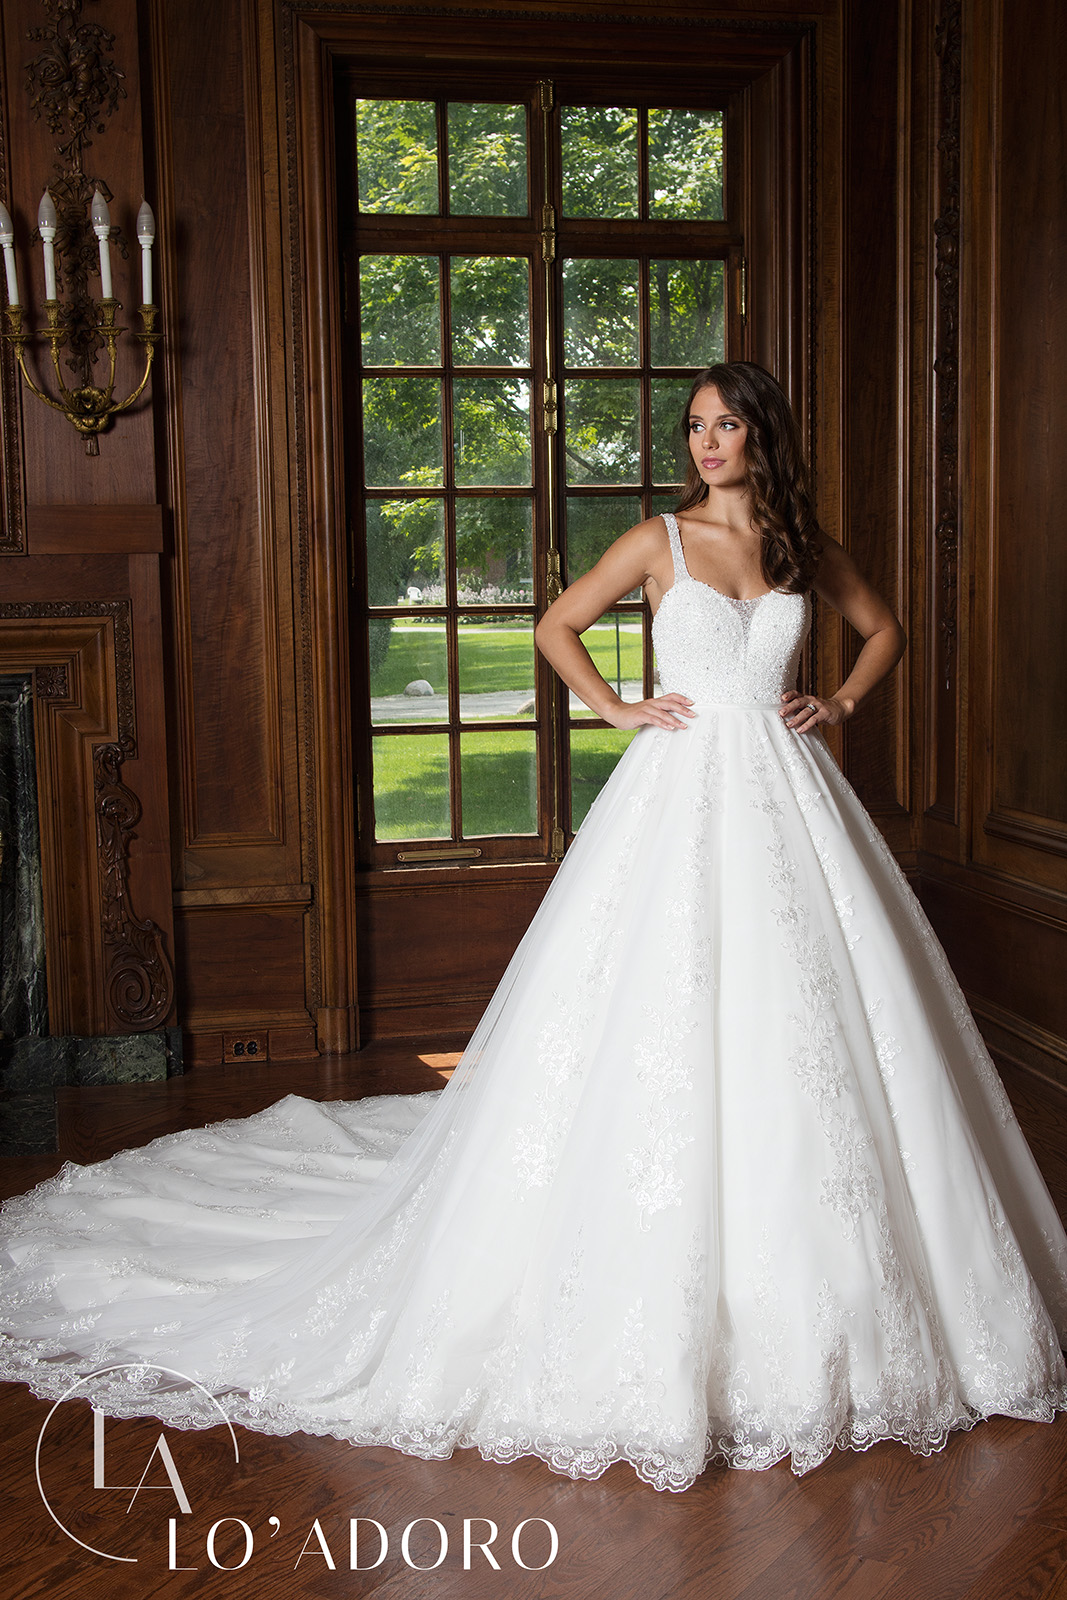 Sweetheart Ball Gowns Lo' Adoro Bridal in Ivory Color